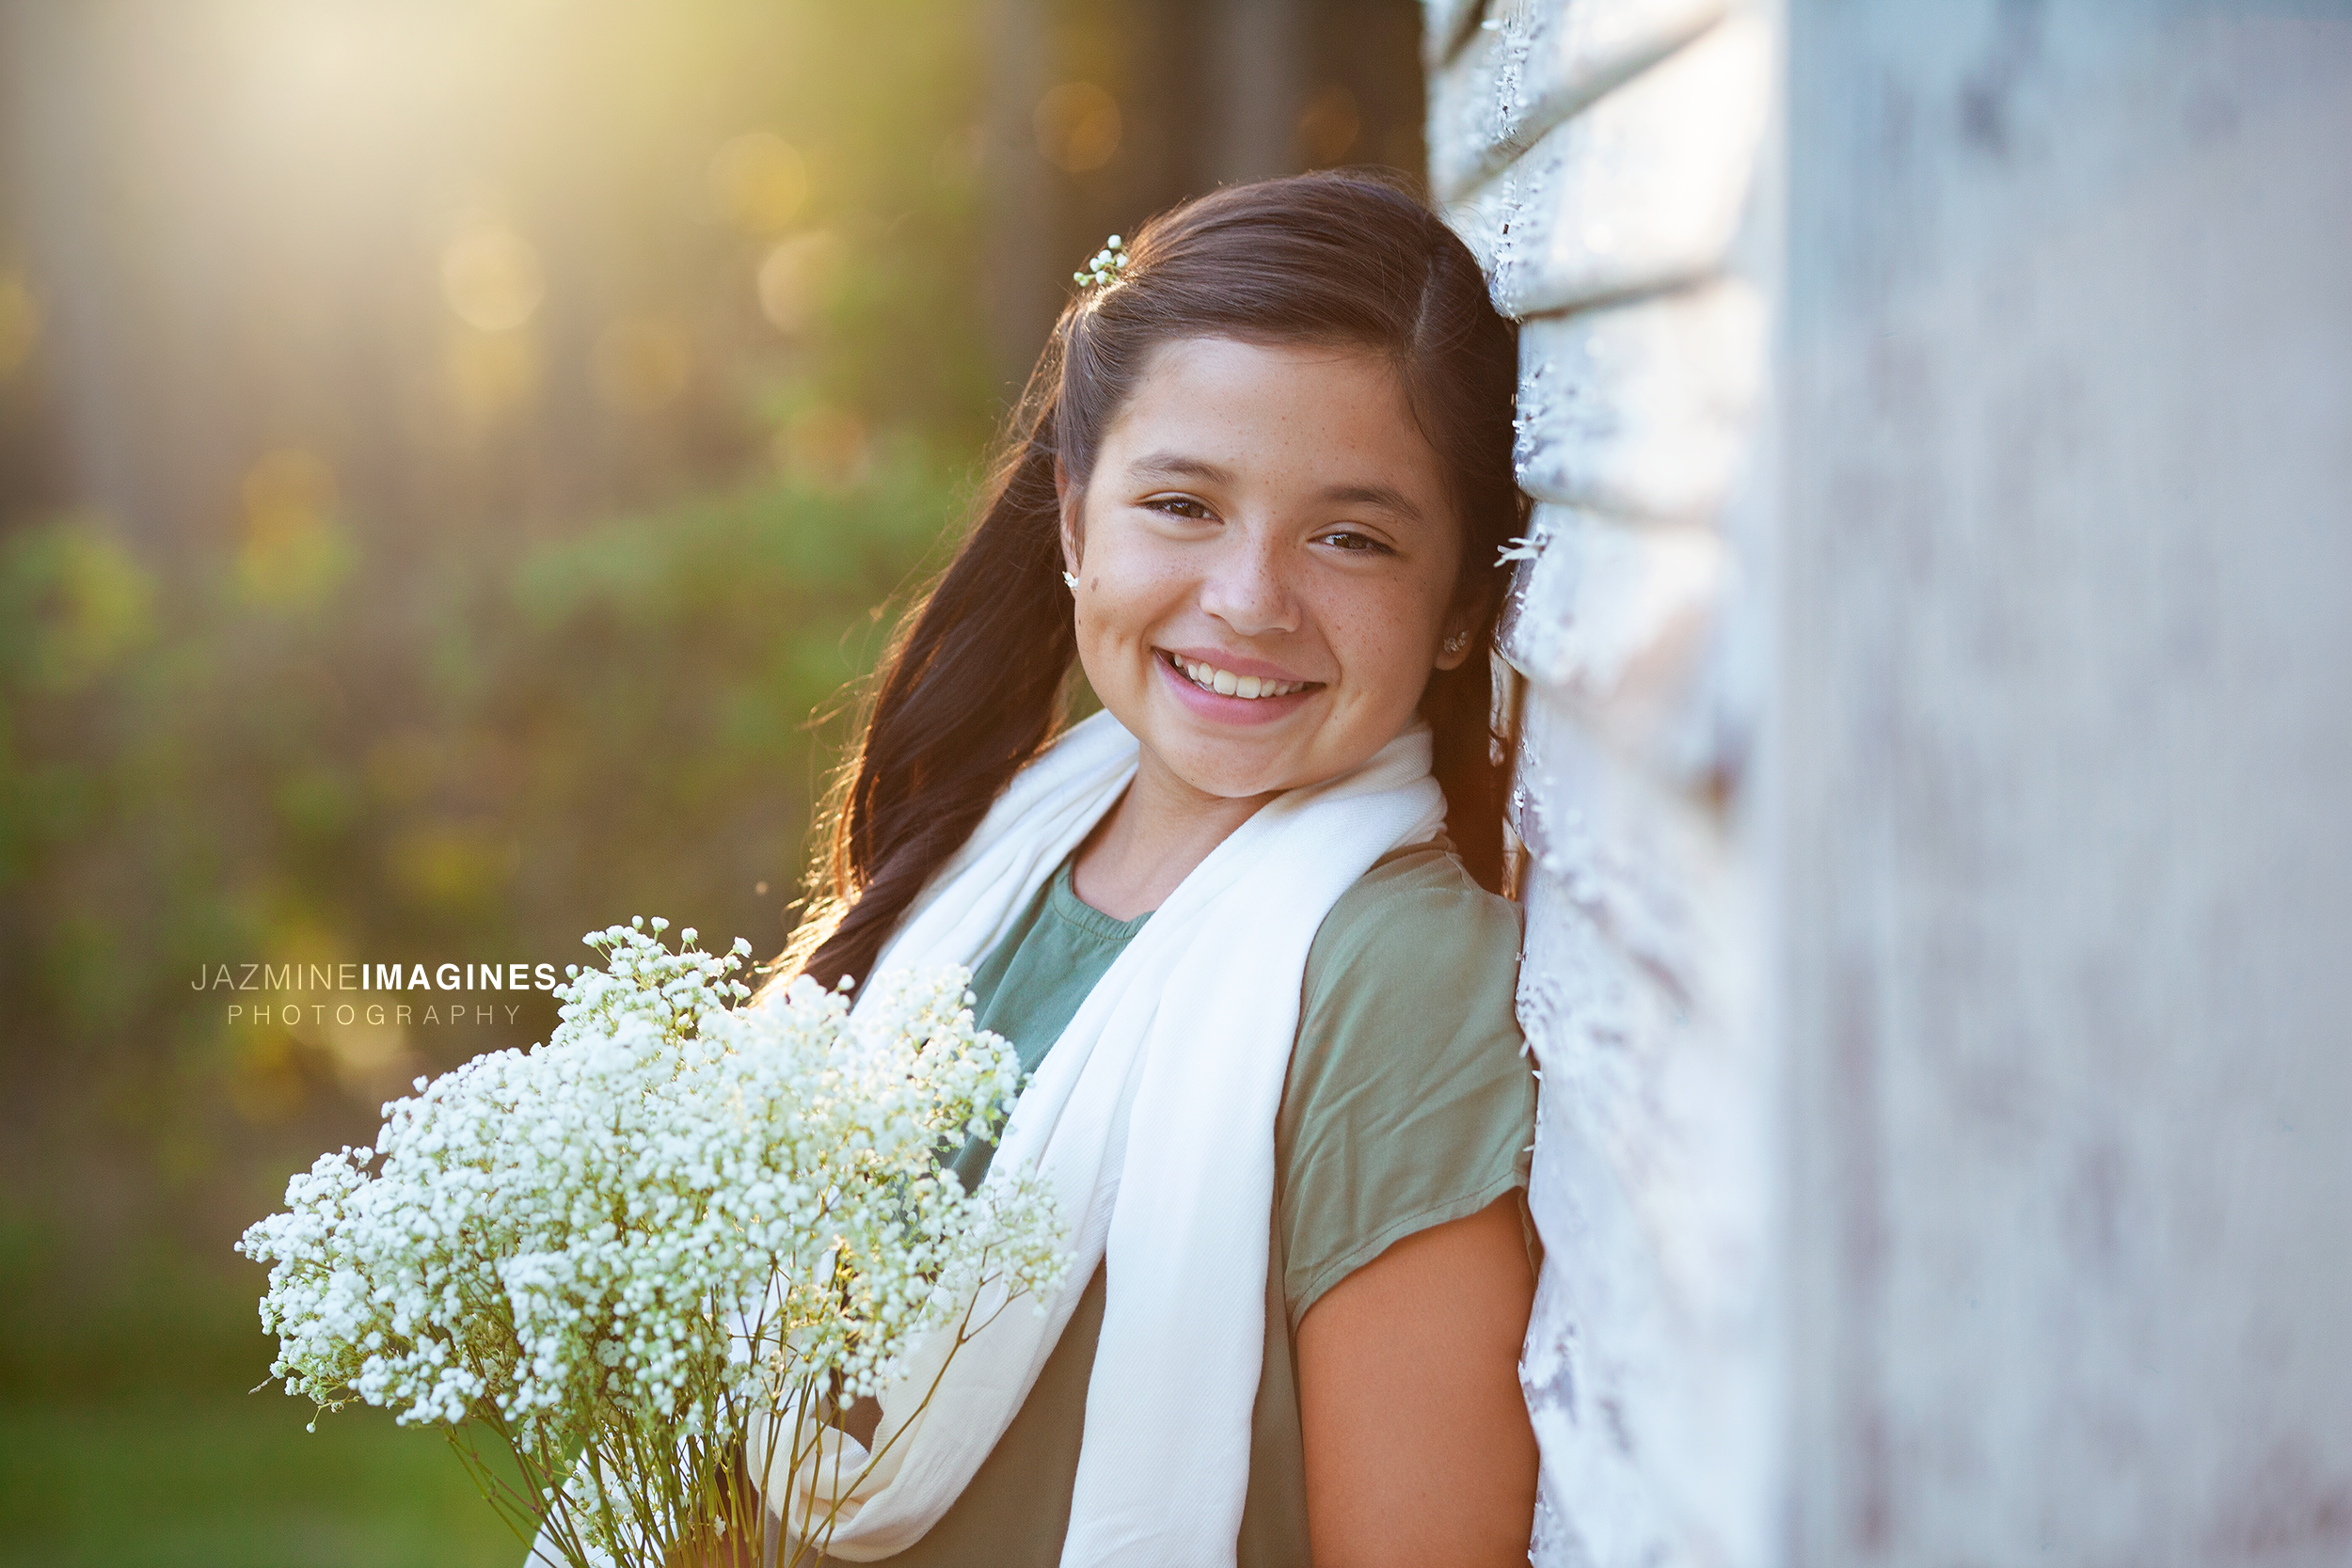 cedar_hill_family_session_jazmine_imagines_photography_logo.png